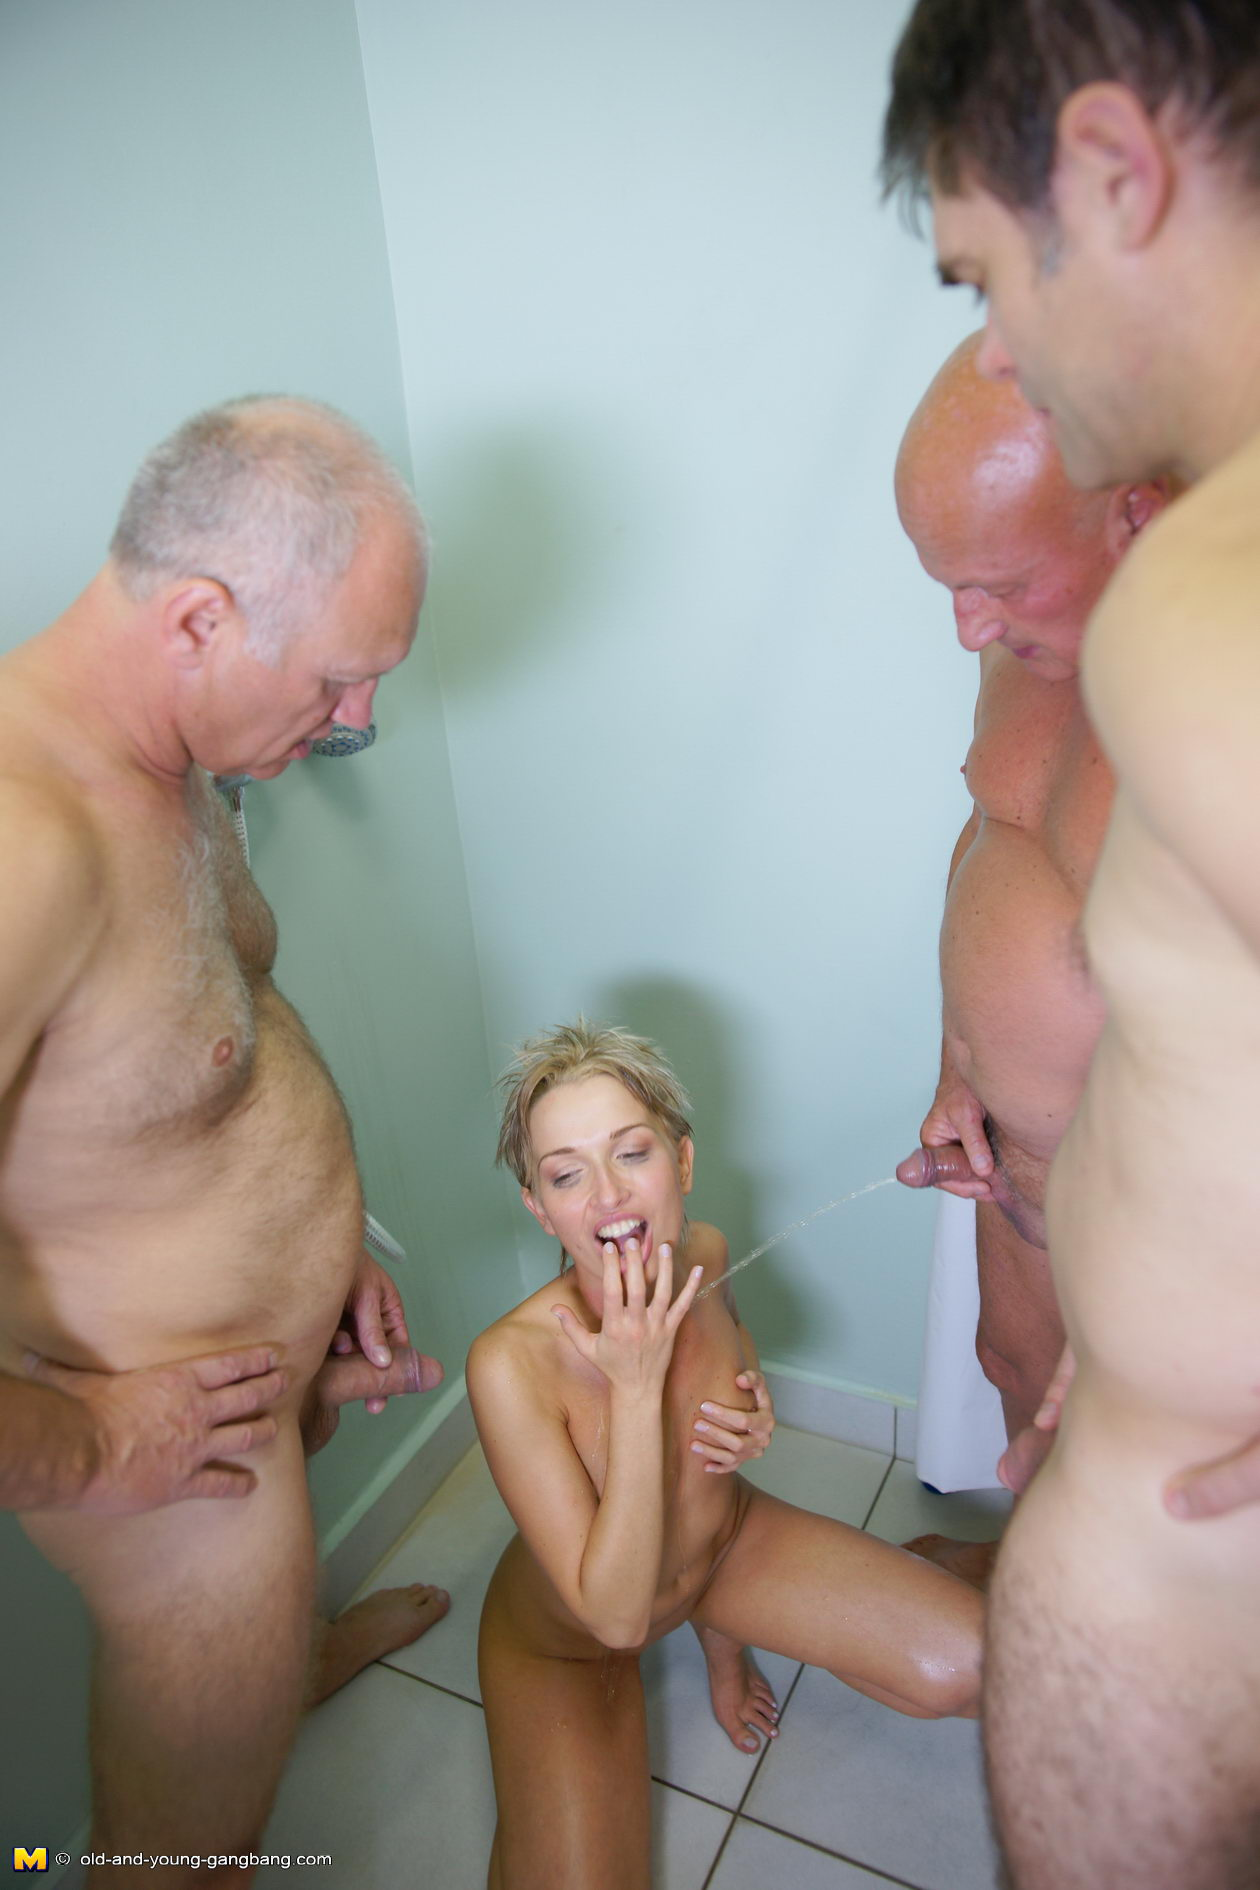 affiliates old and young gangbang galleries 2573 41117